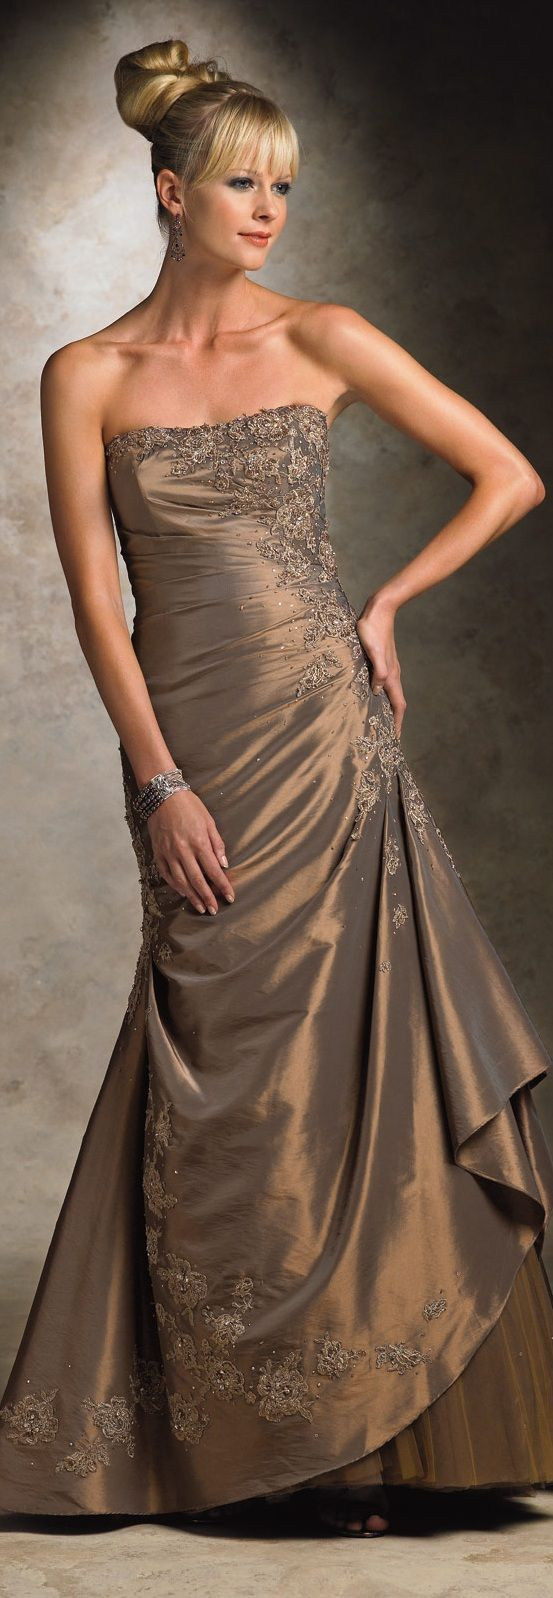 Mon cheri special session everything right gown